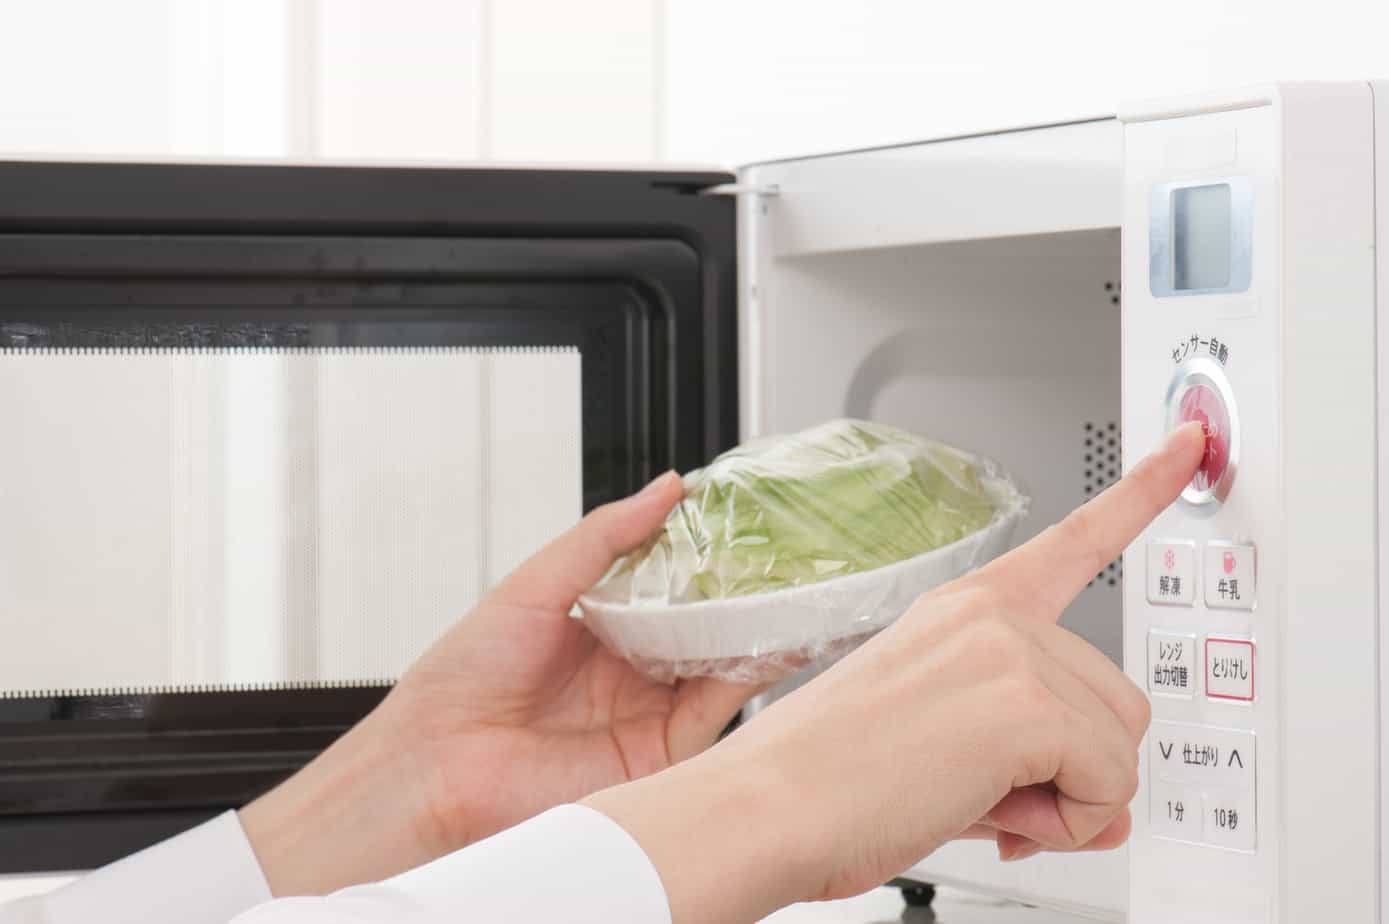 Woman Using Over The Range Microwave